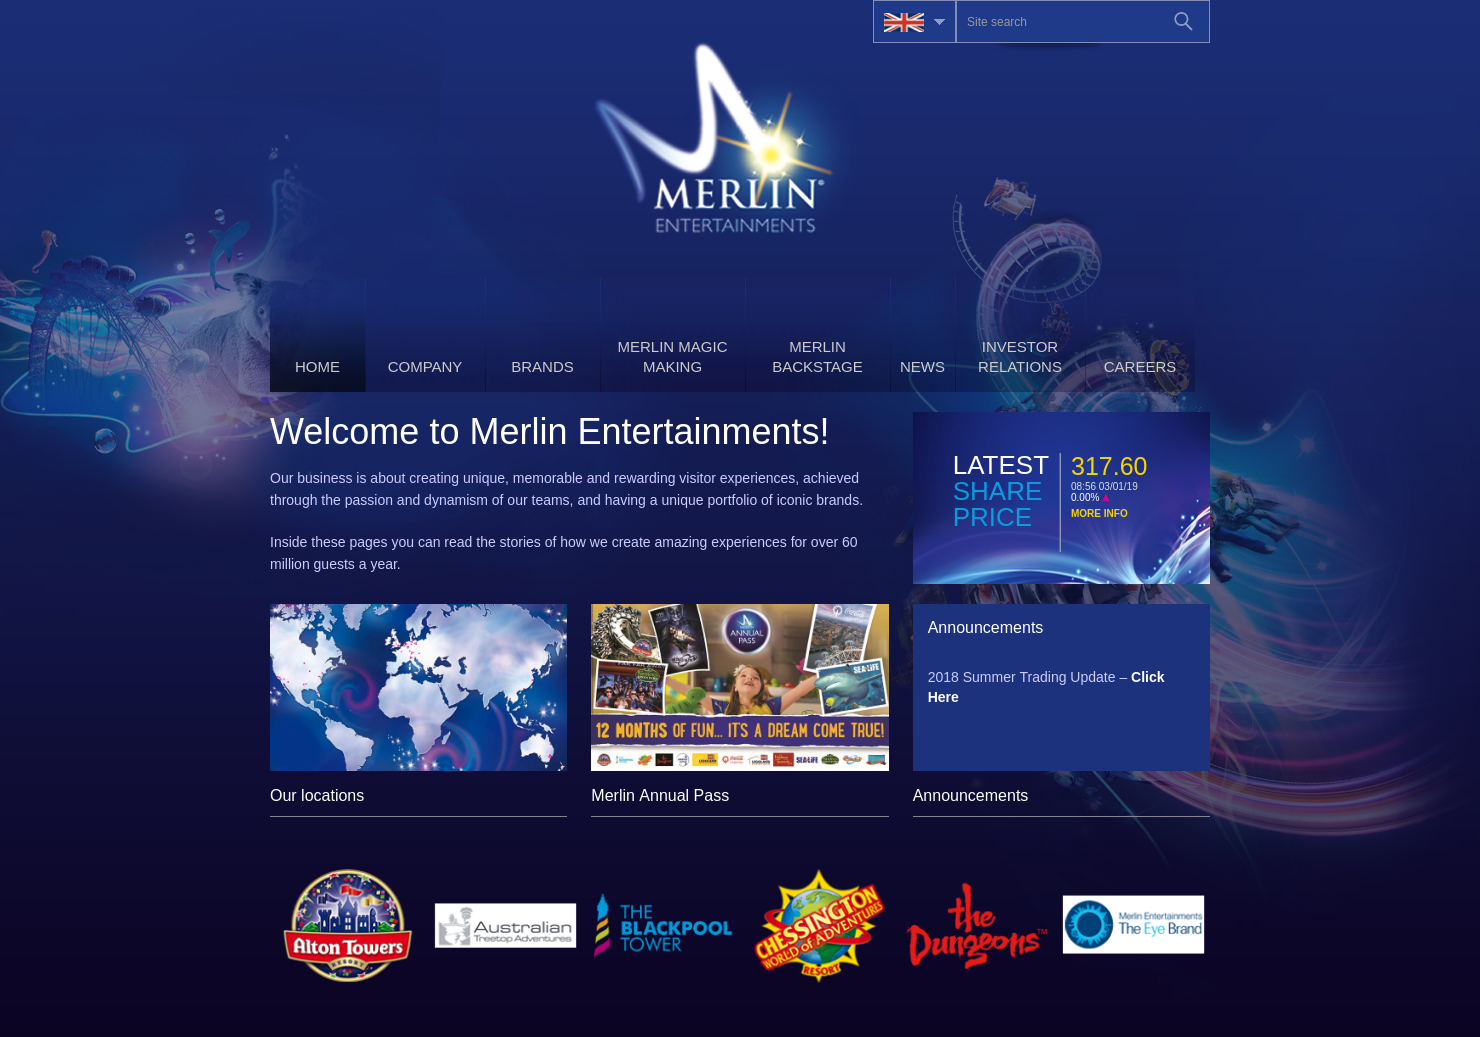 Merlin Entertainments Home Page